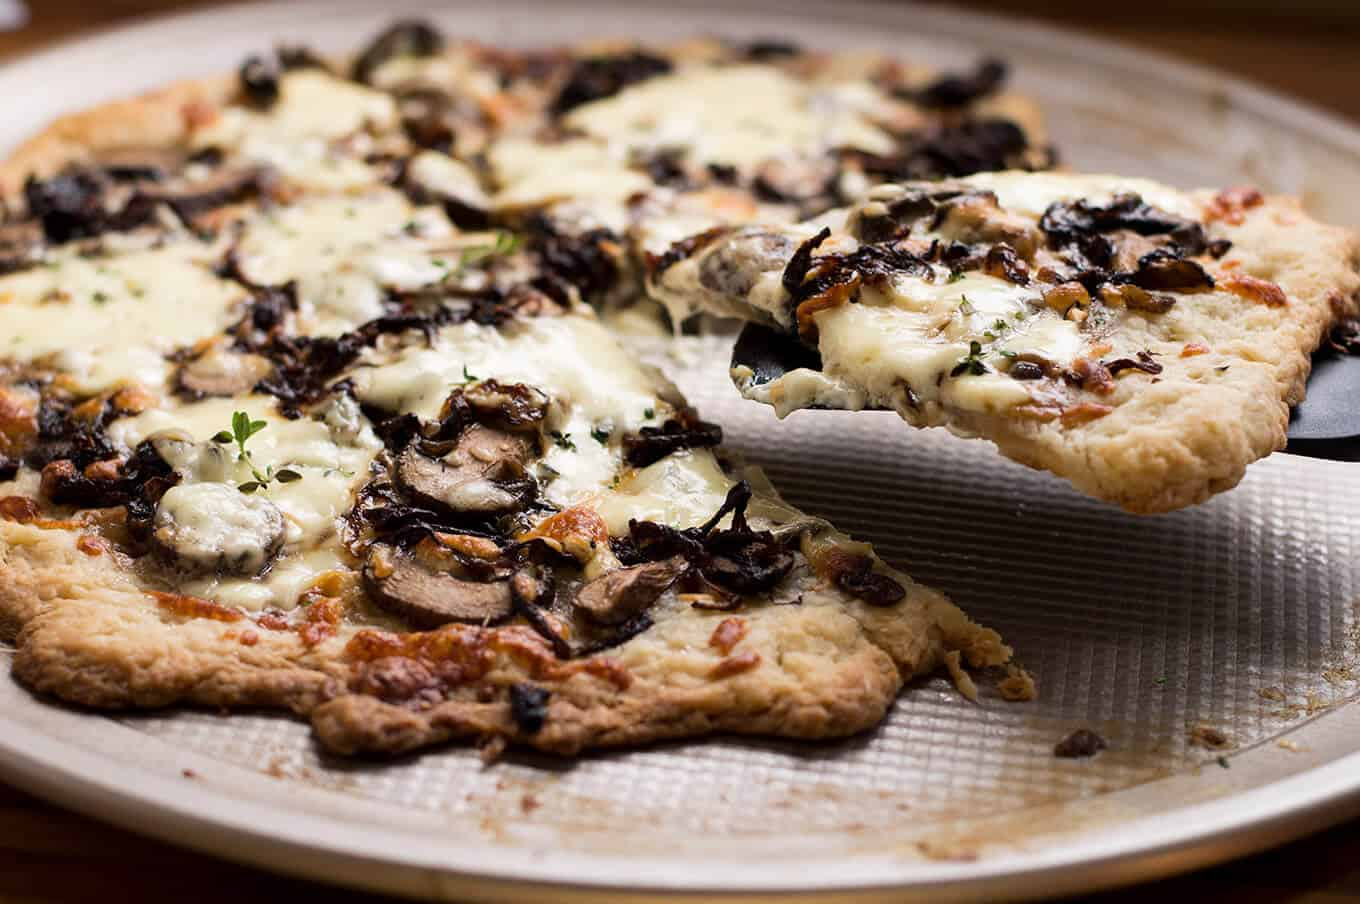 Puff Pastry Pizza with Caramelized Onions, Mushrooms, and Mascarpone Cheese   omgfood.com